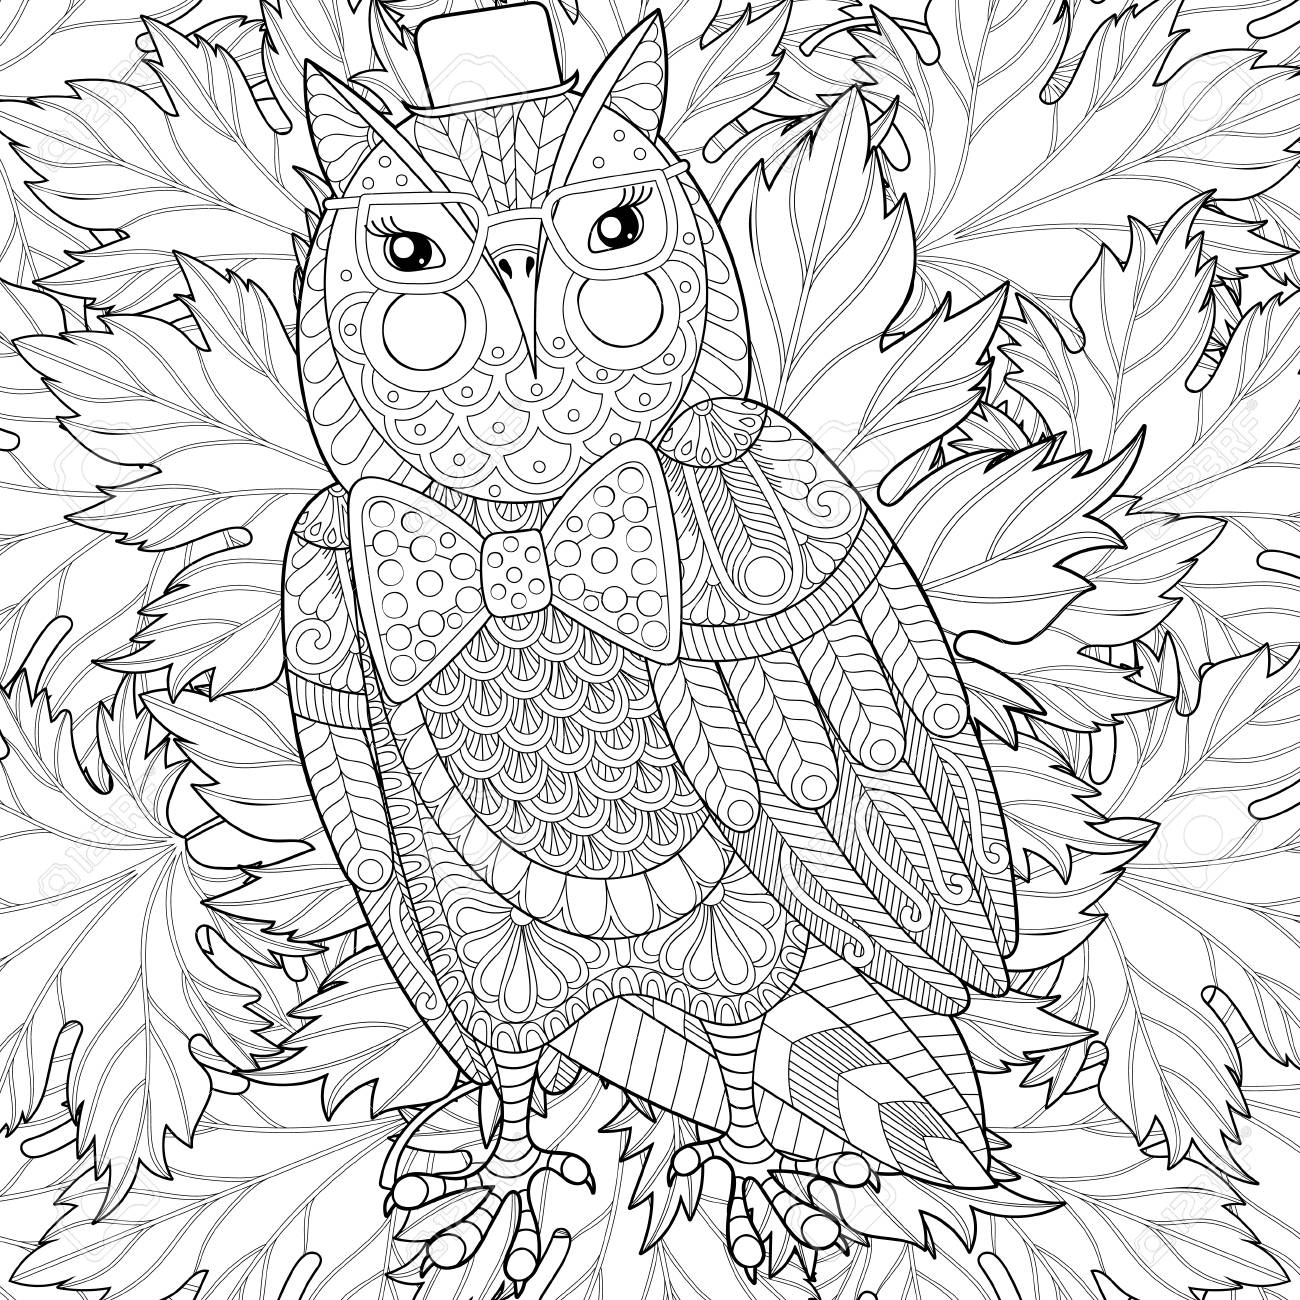 Zentangle Owl Painting For Adult Anti Stress Coloring Page Color Royalty Free Cliparts Vectors And Stock Illustration Image 69992640